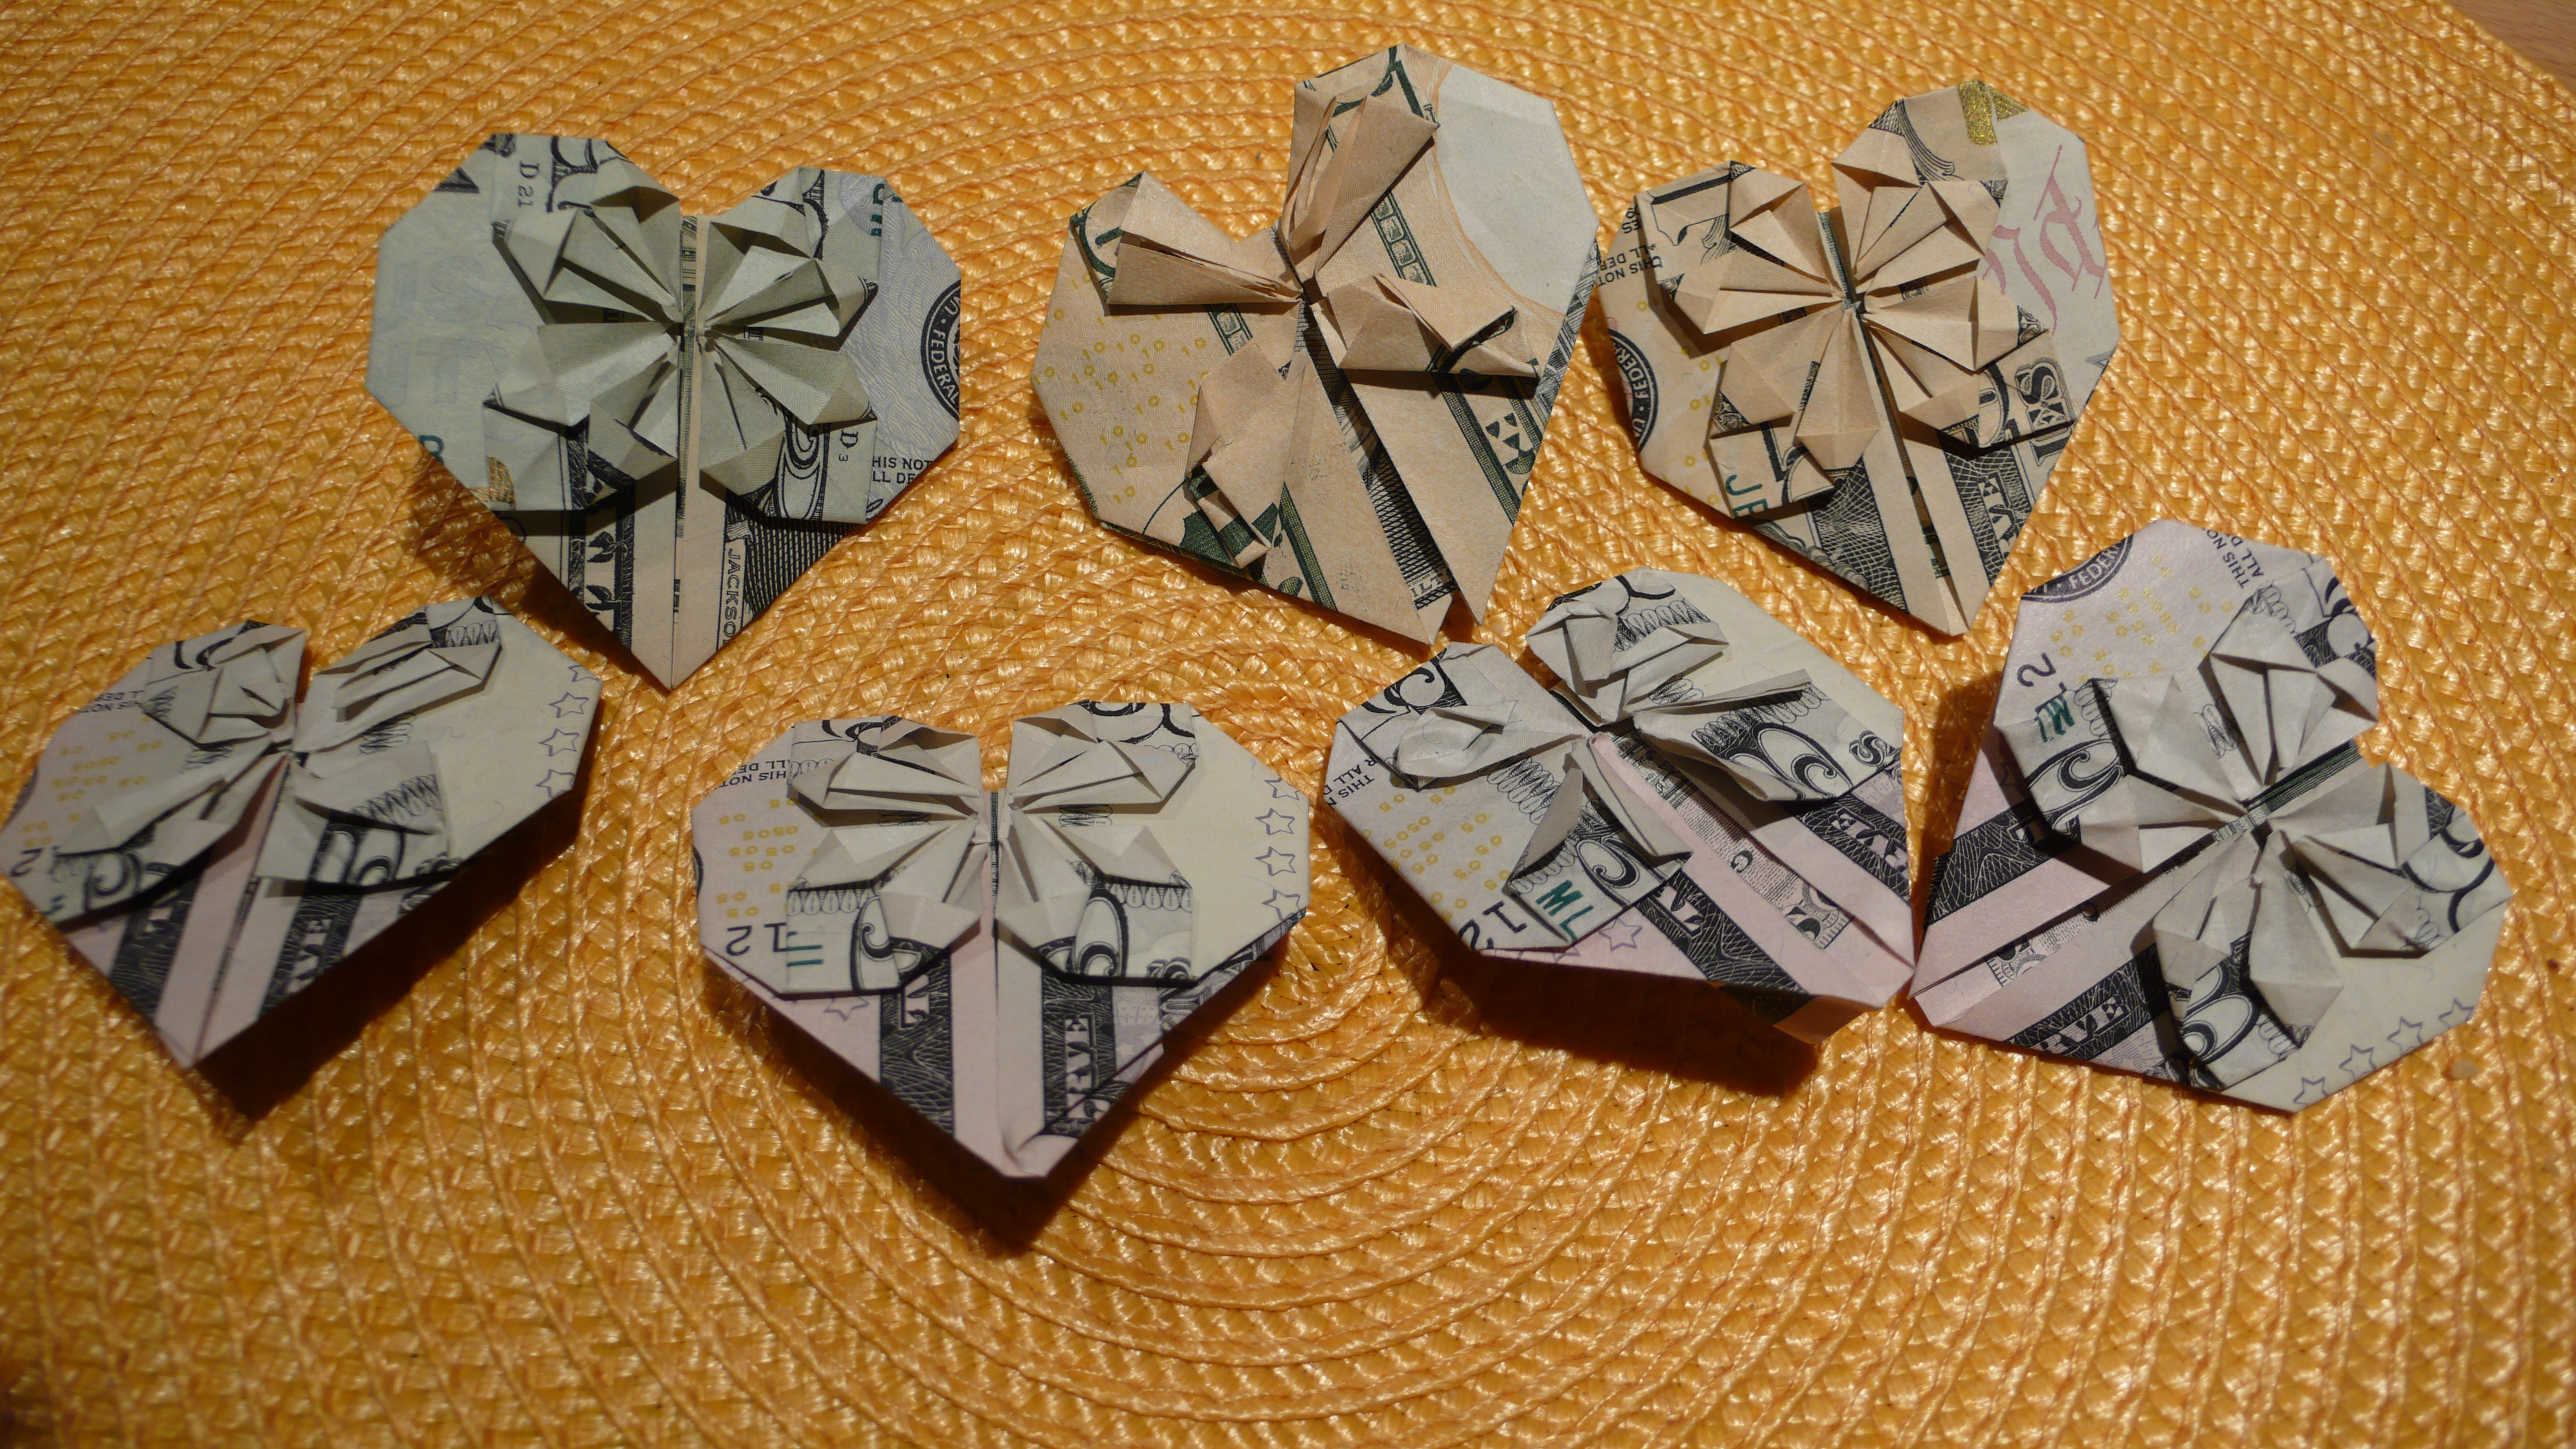 Origami paper heart made from dollar bills frangallos blog our paper hearts we are going to make more on thursday jeuxipadfo Images